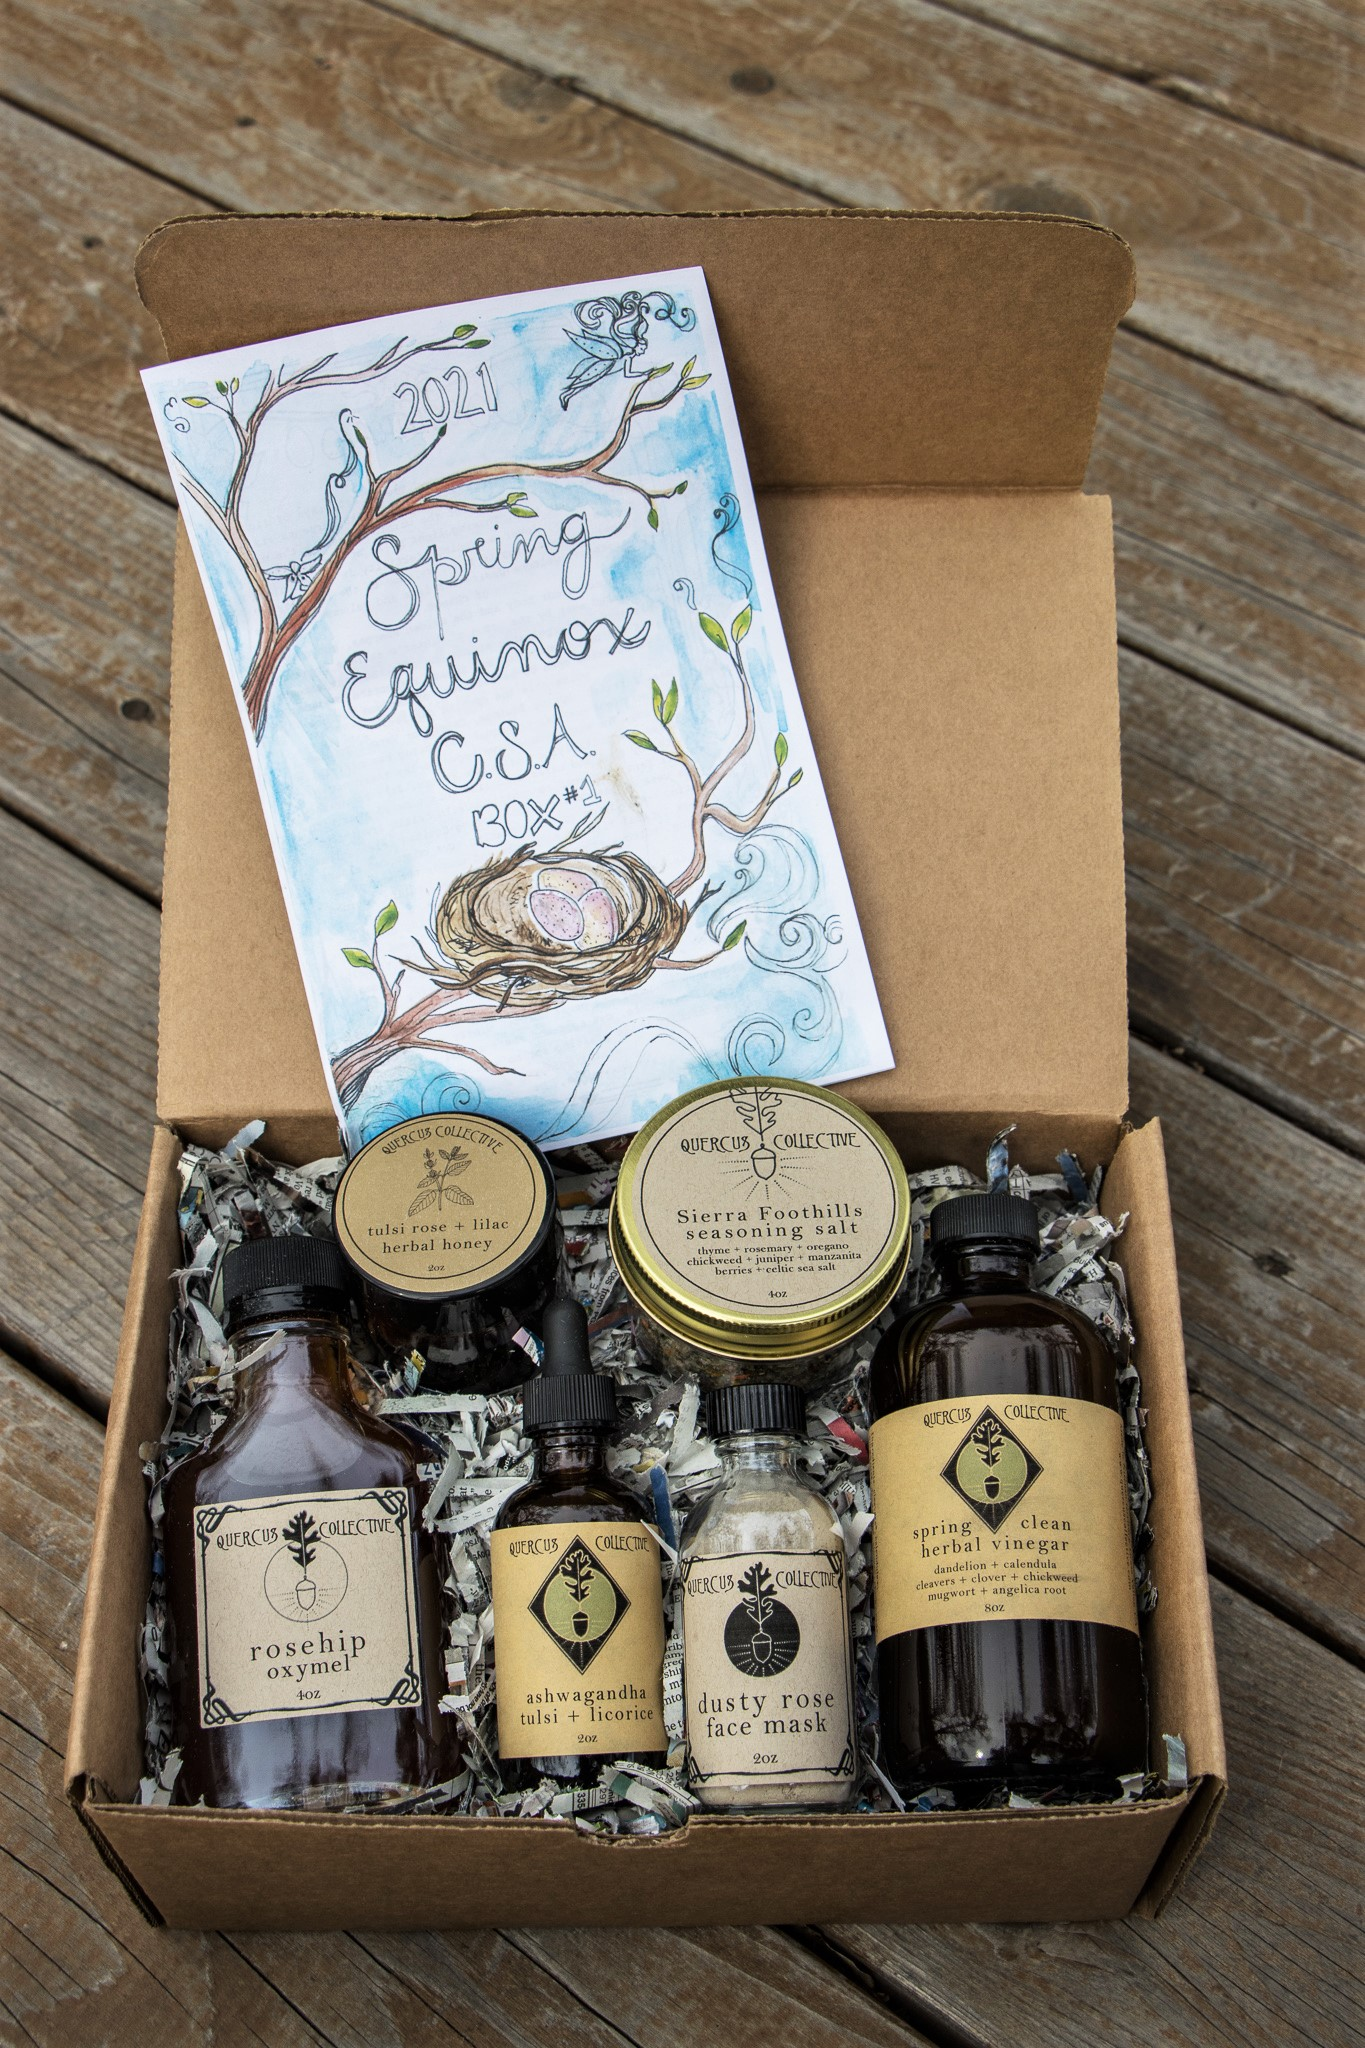 Quercus Collective's spring equinox box with oils, creams and a hand-drawn info book.